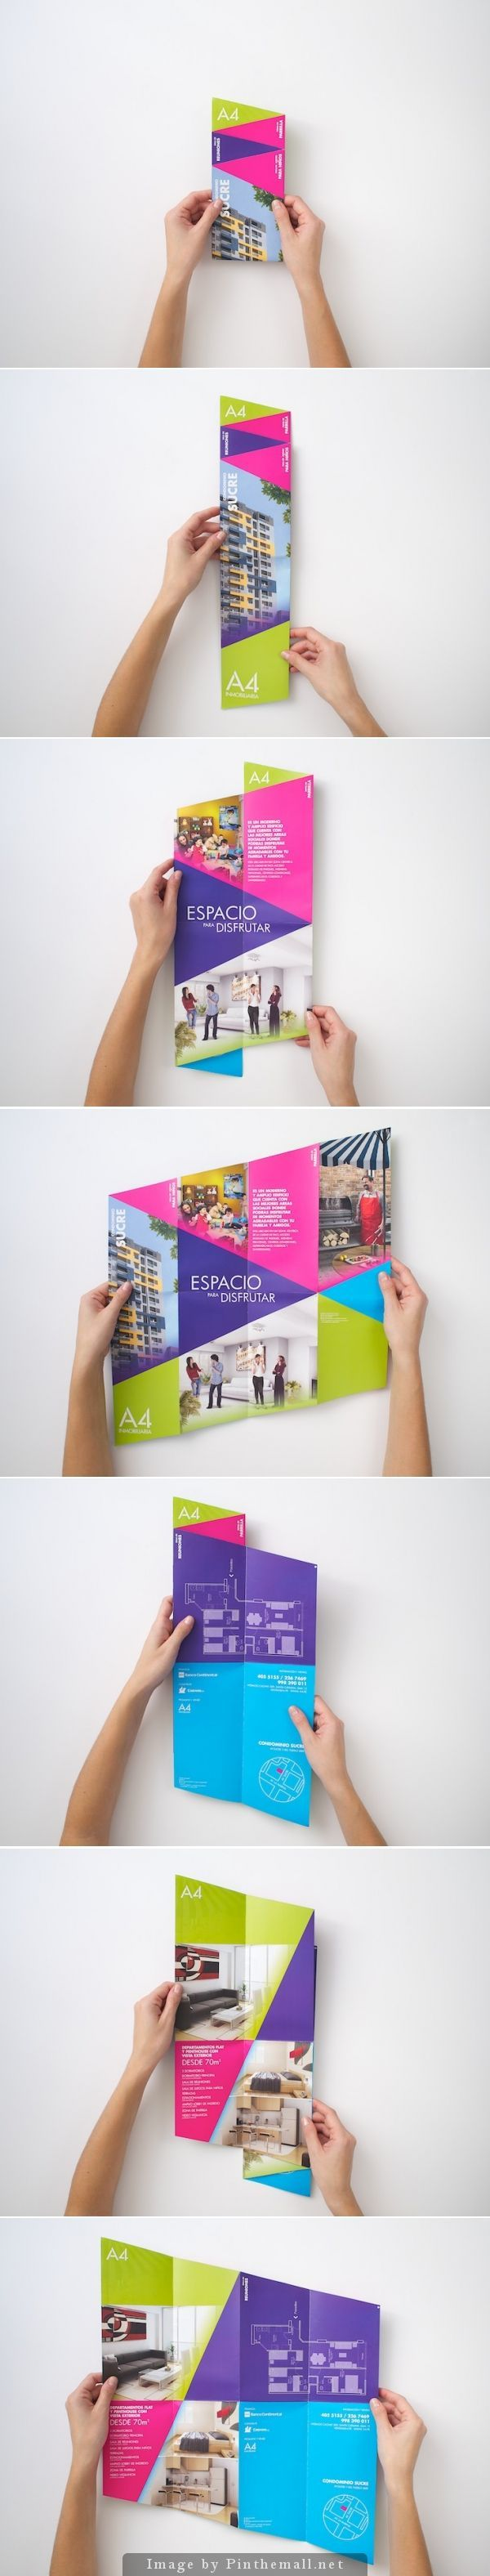 We made an unusual folding and format with colorful geometric shapes to give more fun to the information and make the piece less ordinary.  |  IS Creative Studio